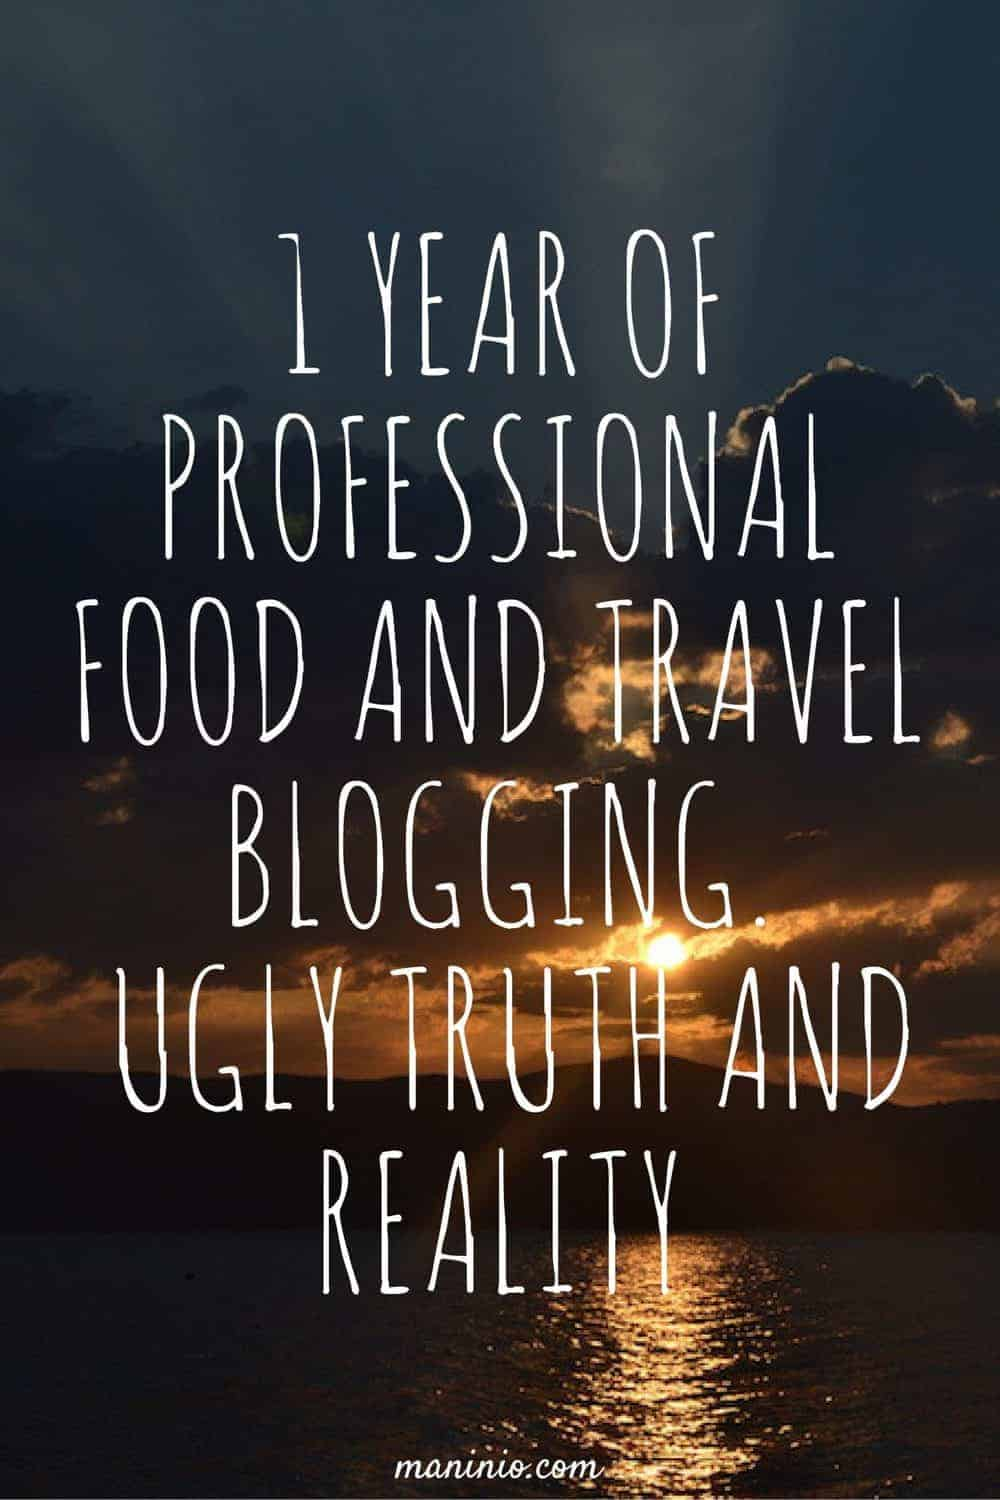 1 year of Professional Food and Travel Blogging   Ugly Truth and Reality. maninio.com #travelblogging #foodblog